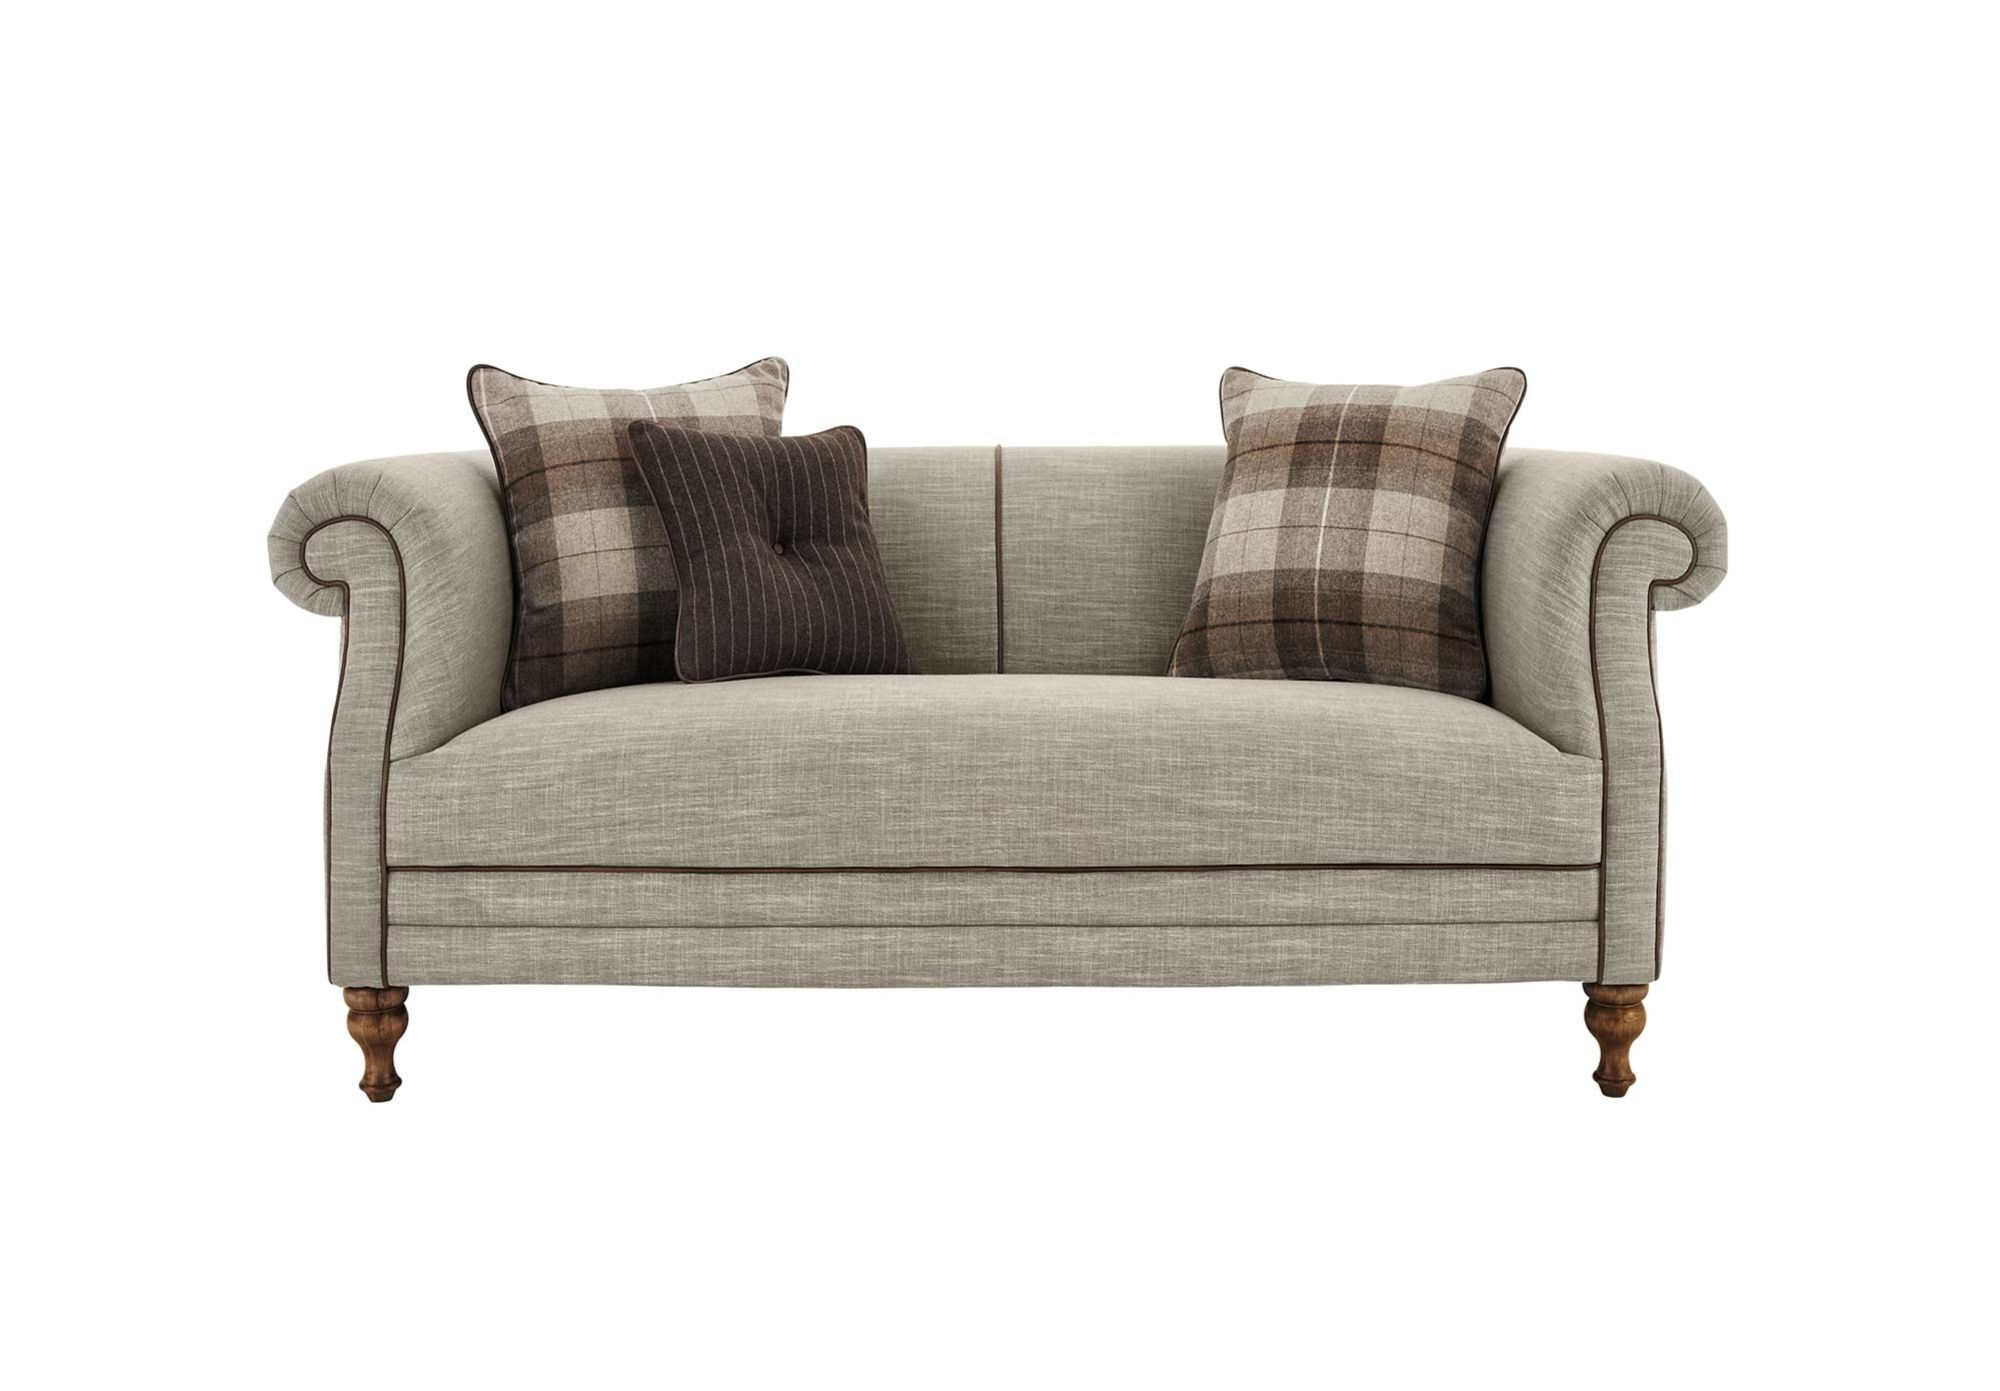 Furniture Village Hartford Sofa Hartford Small Fabric Sofa New England Gorgeous Living Room